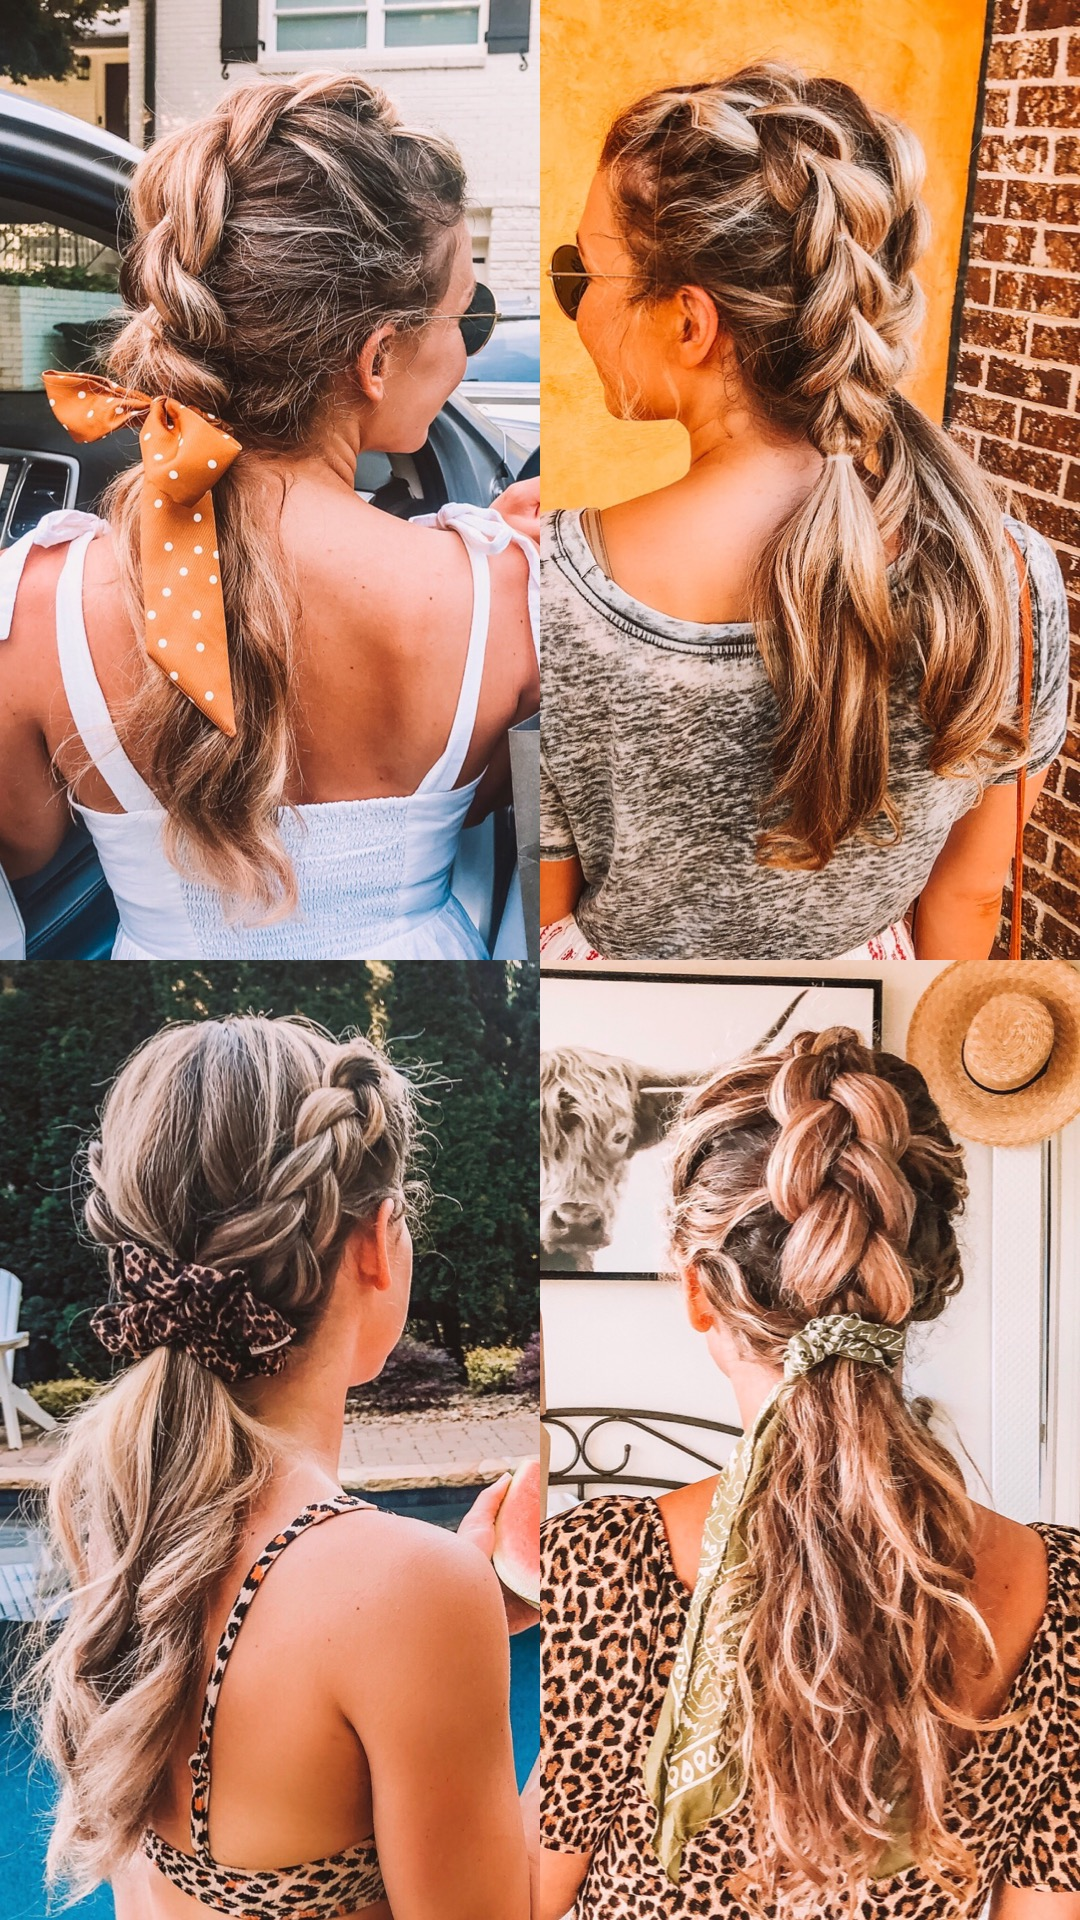 hair-braid-styles.jpg